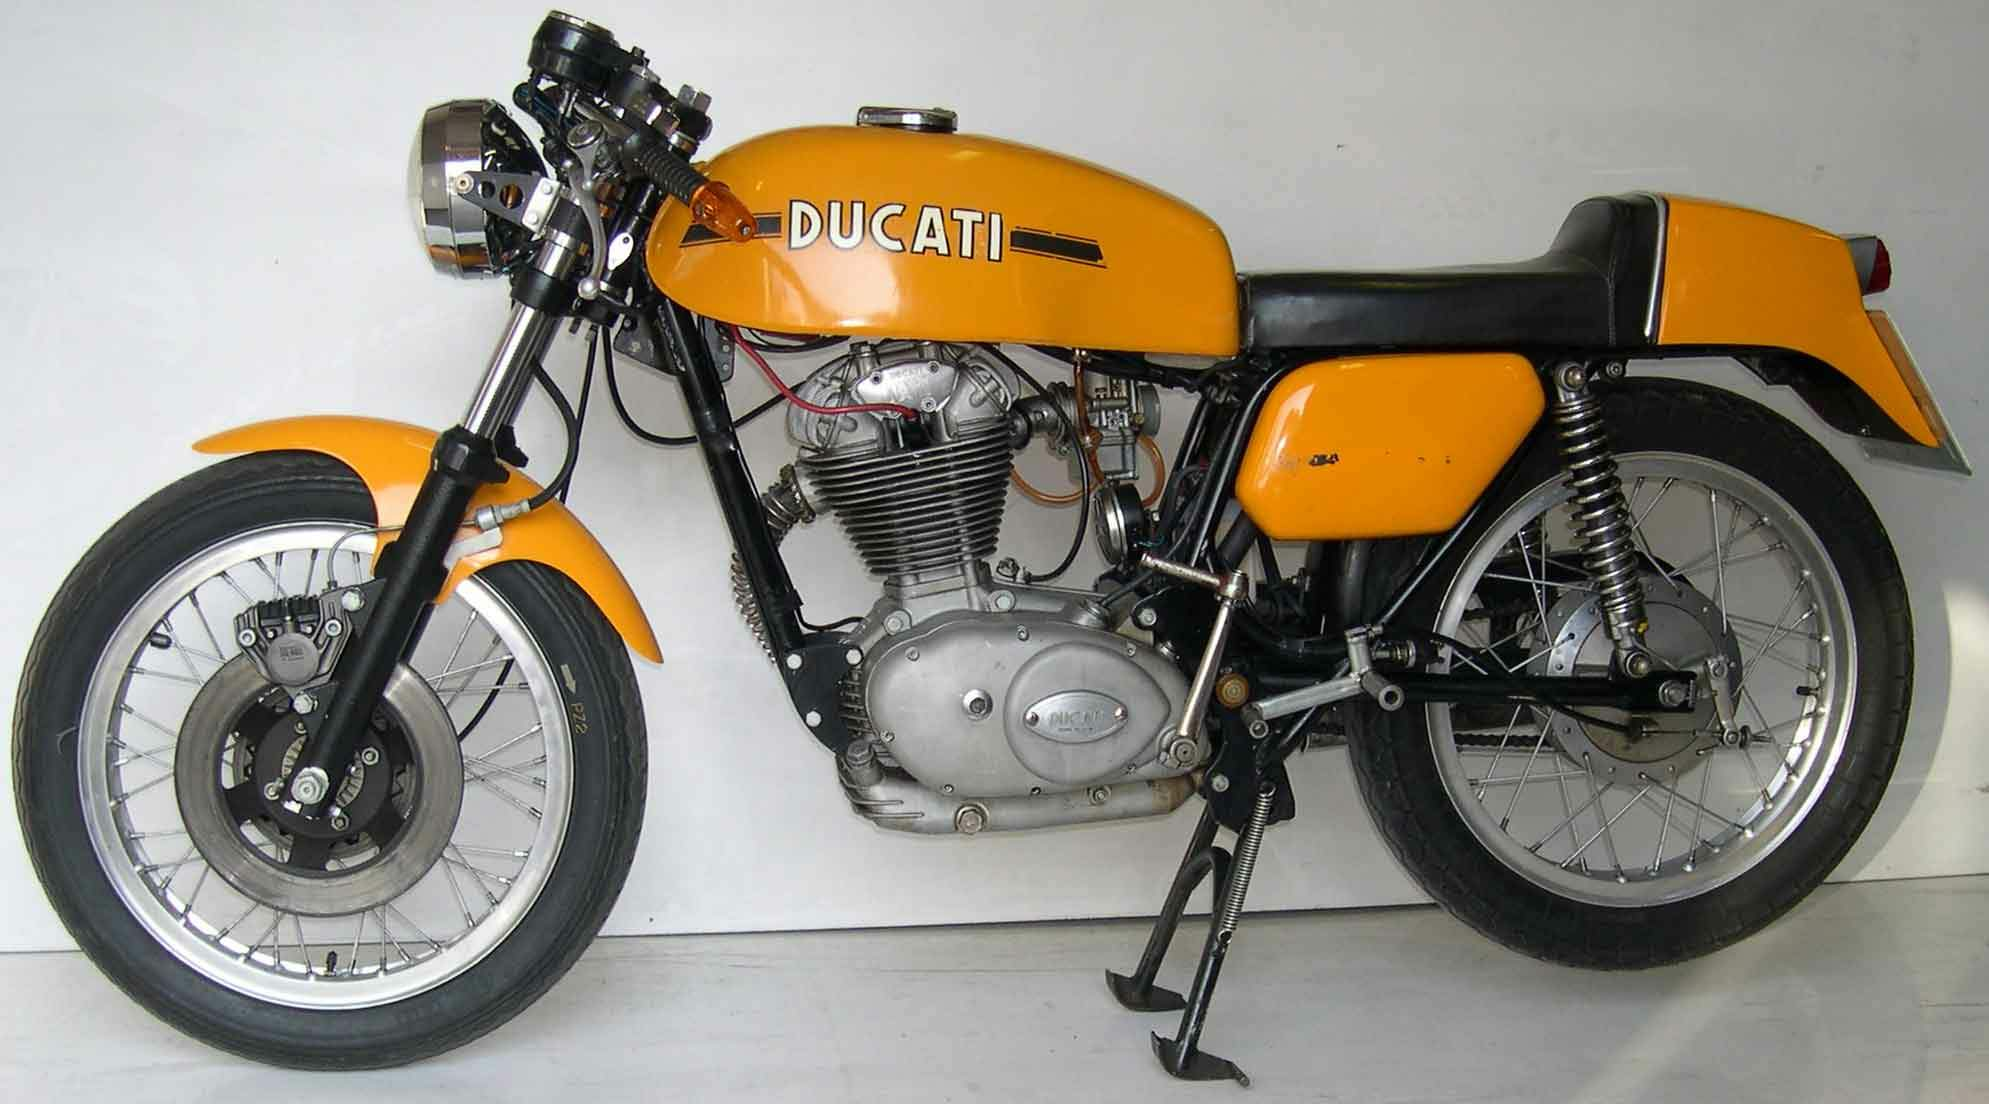 Ducati 350 Mark 3 D 1974 images #10204